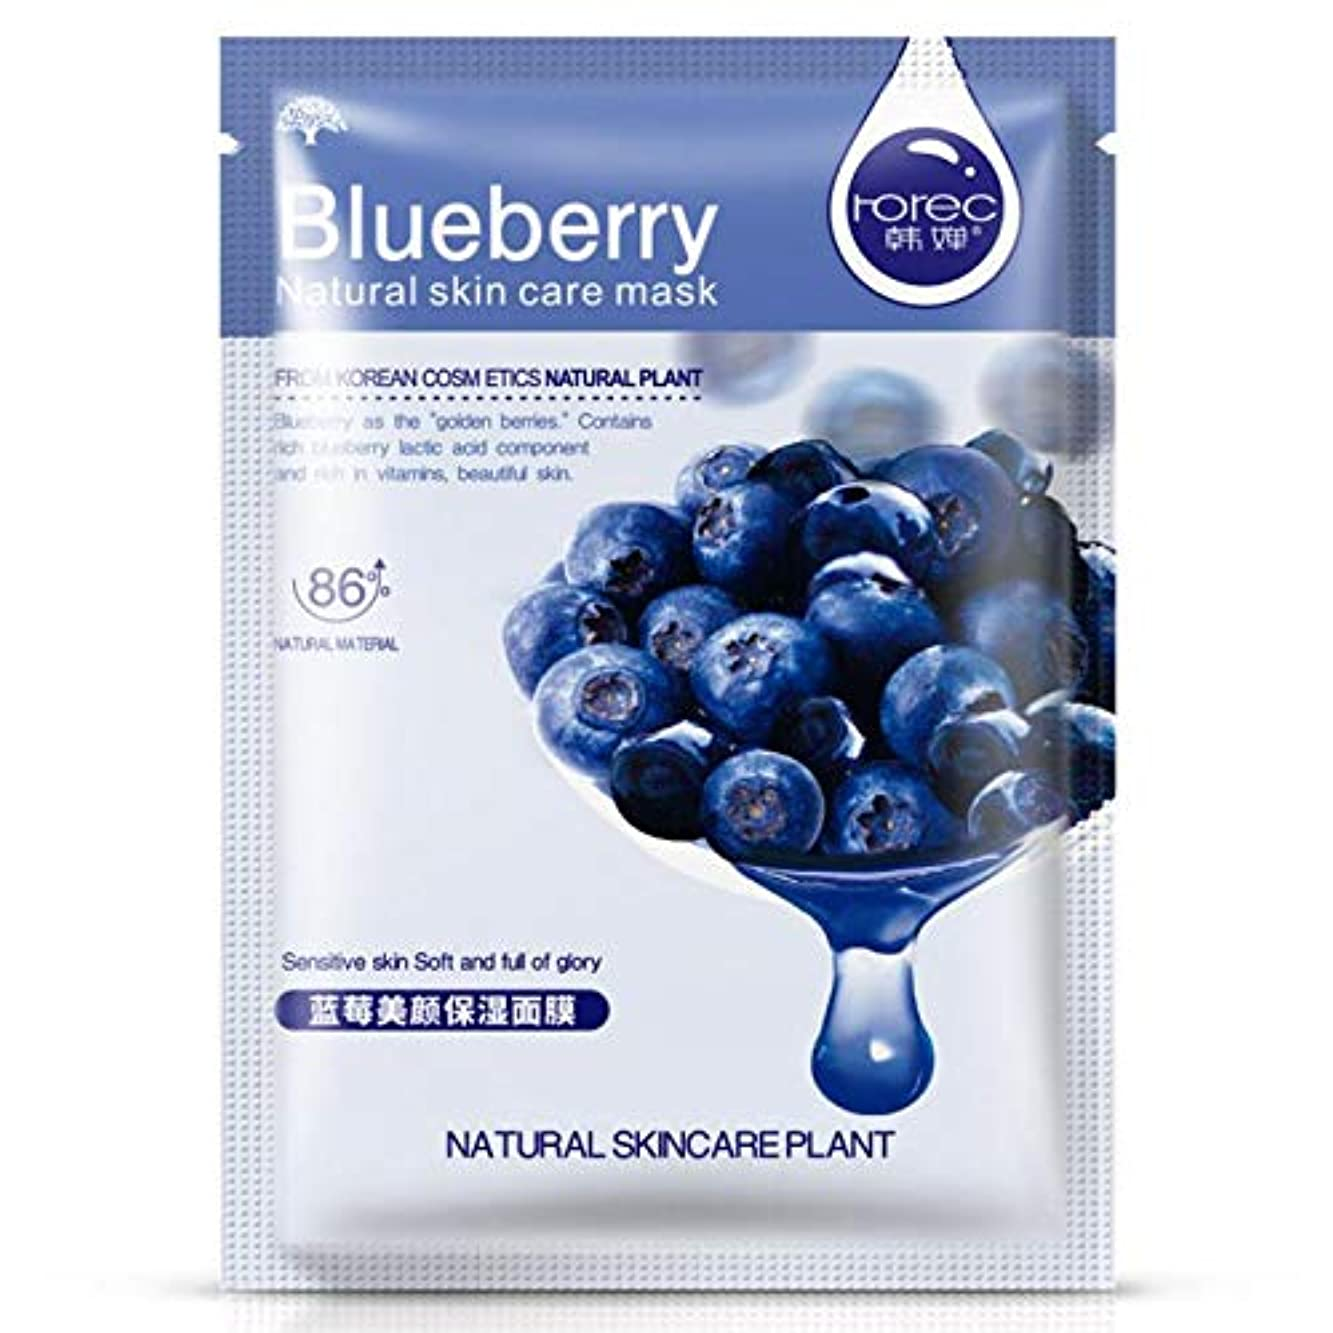 (Blueberry) Skin Care Plant Facial Mask Moisturizing Oil Control Blackhead Remover Wrapped Mask Face Mask Face...